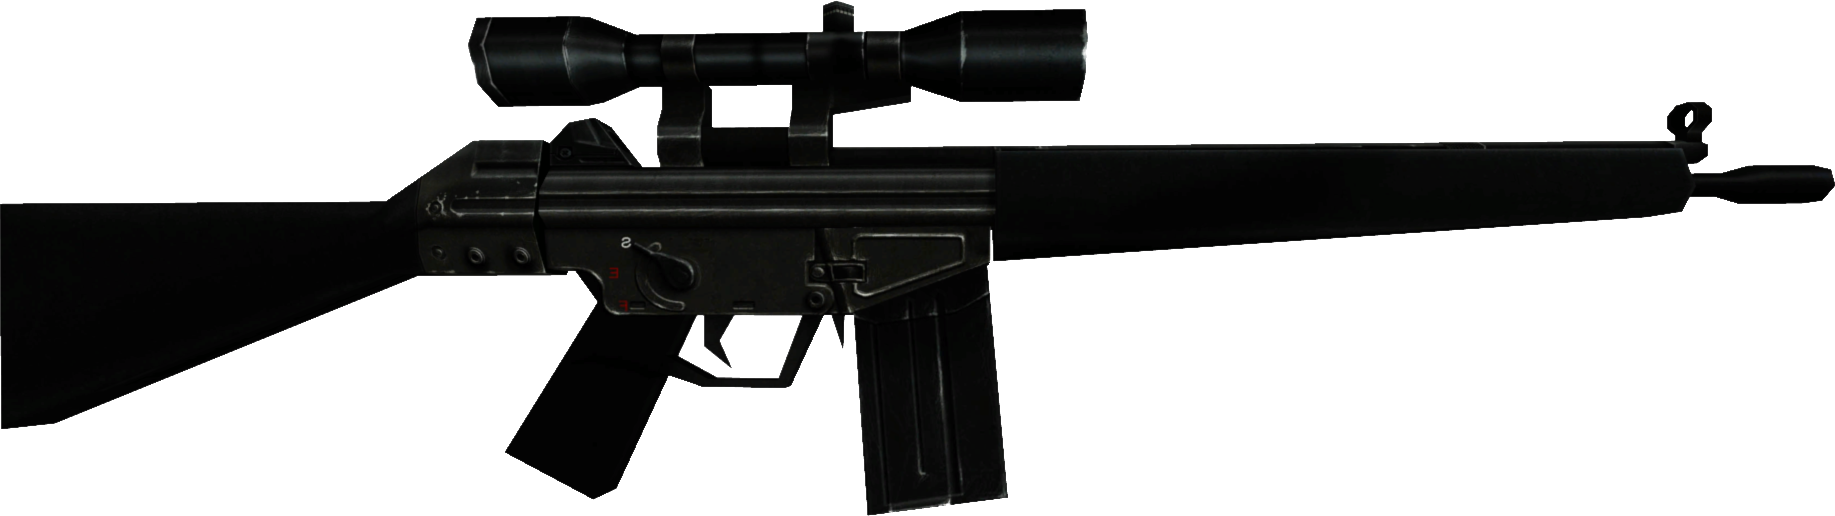 Png Clipart Weapons Best image #40784